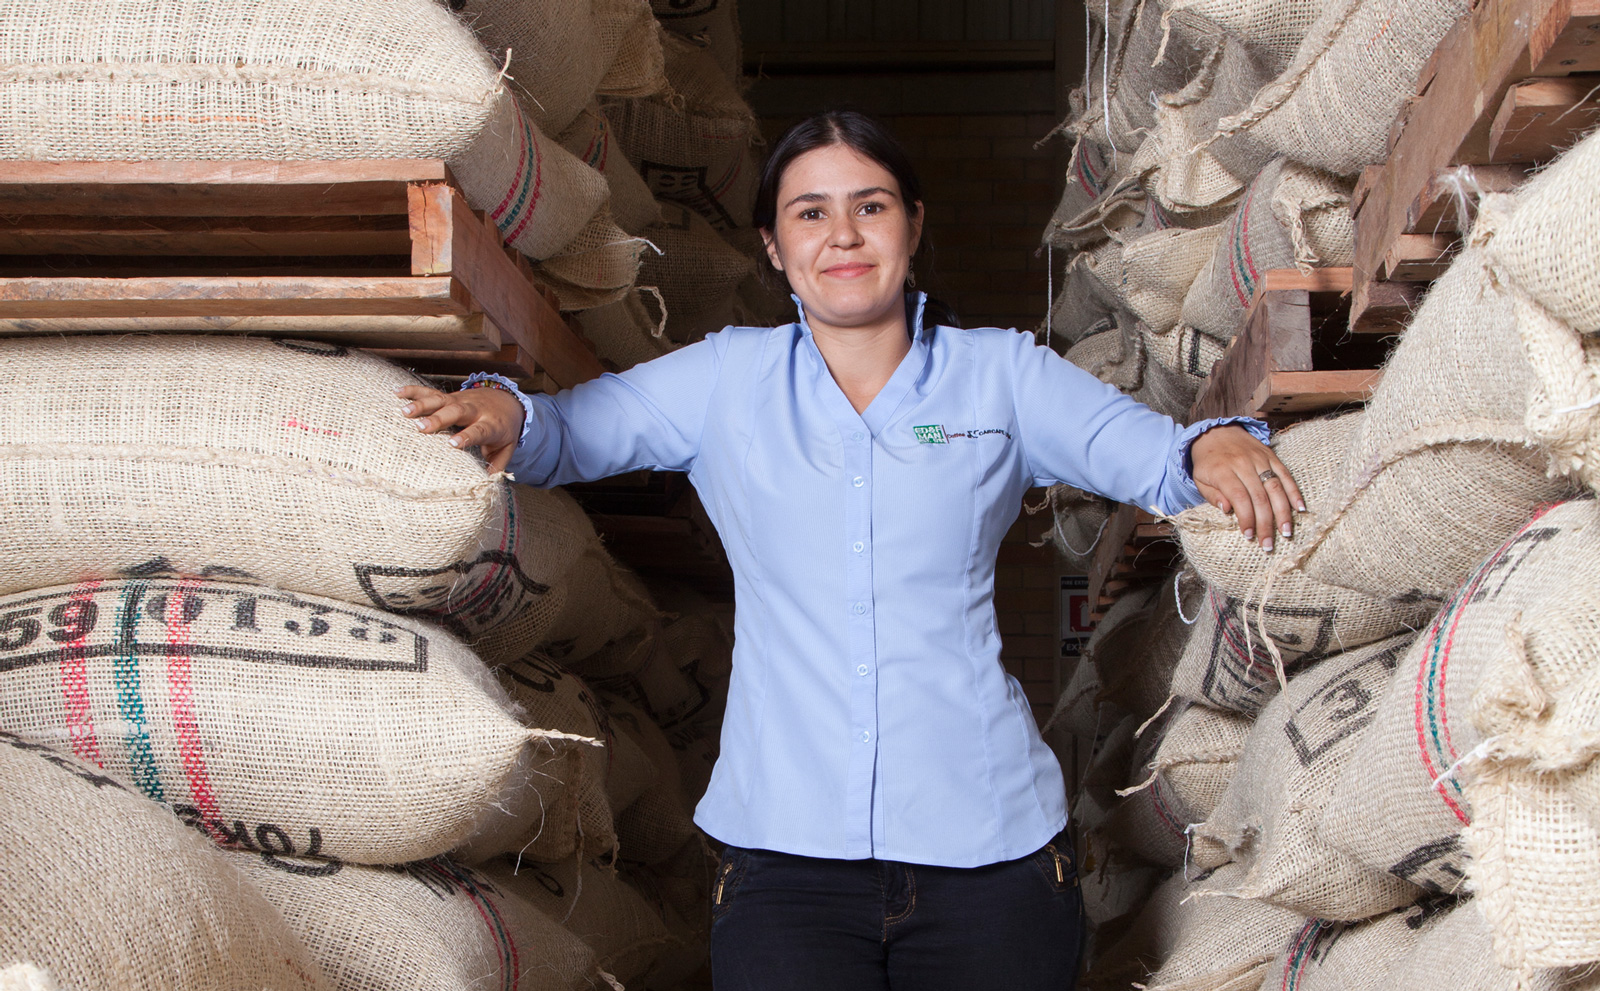 ED&F Man Coffee - worker standing among coffee sacks